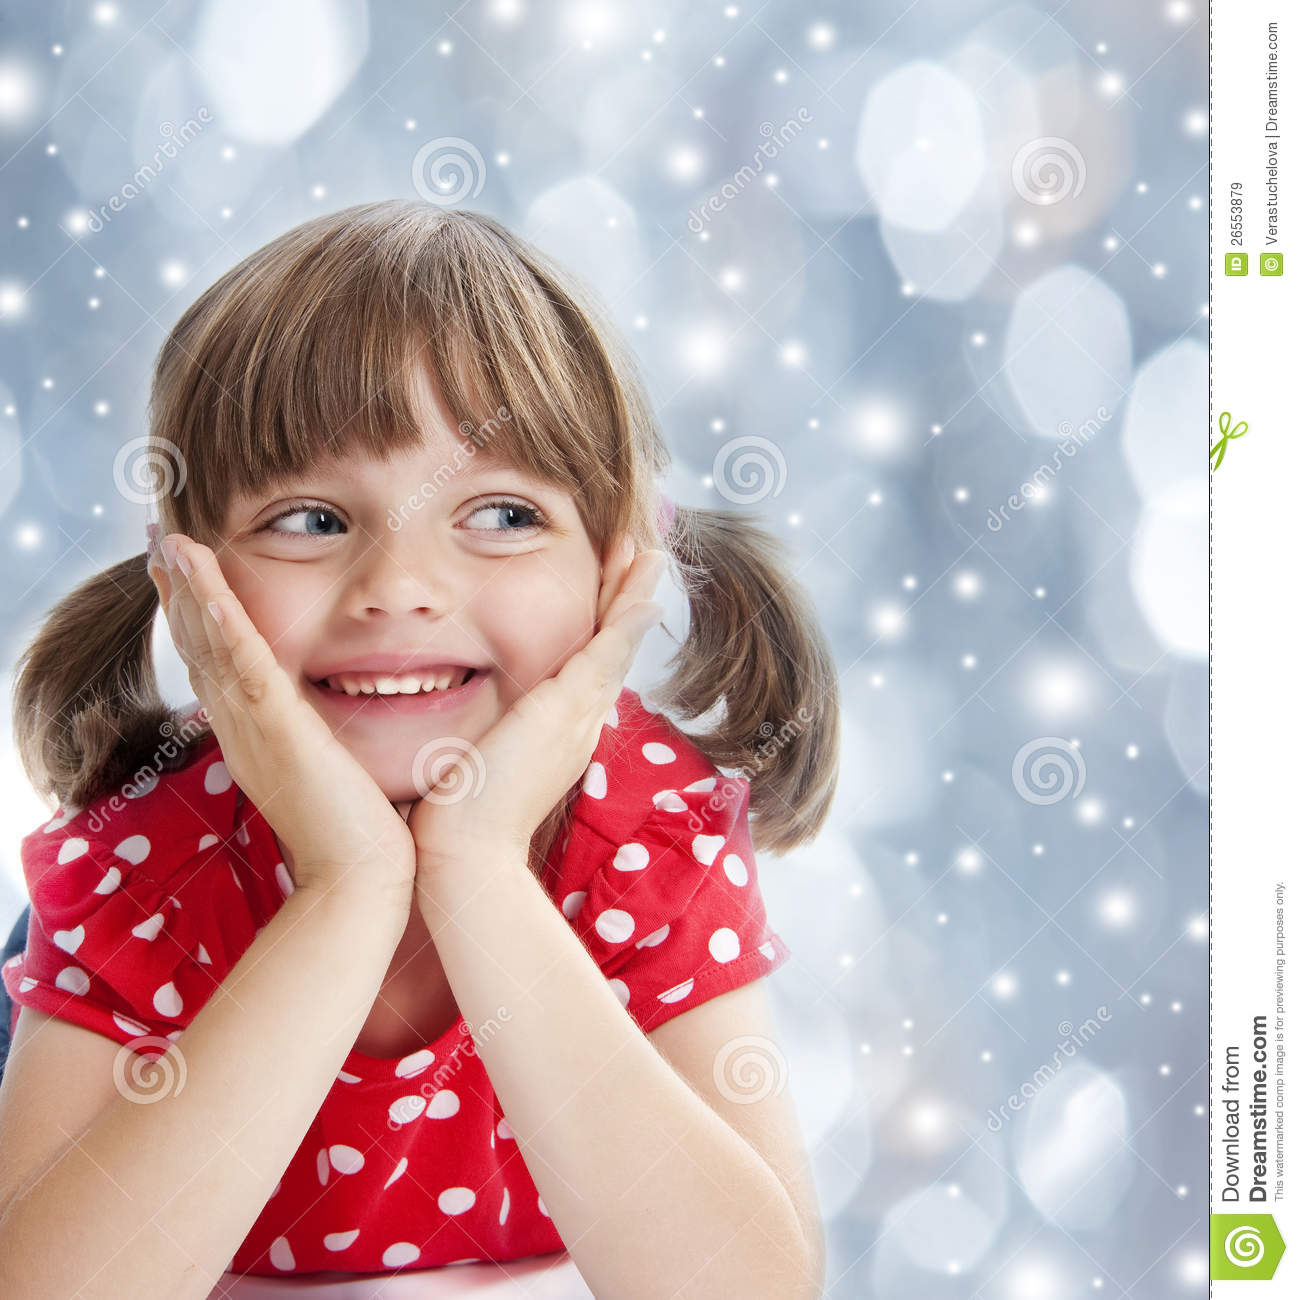 Happy Little Girl At The Winter Time Royalty Free Stock ...